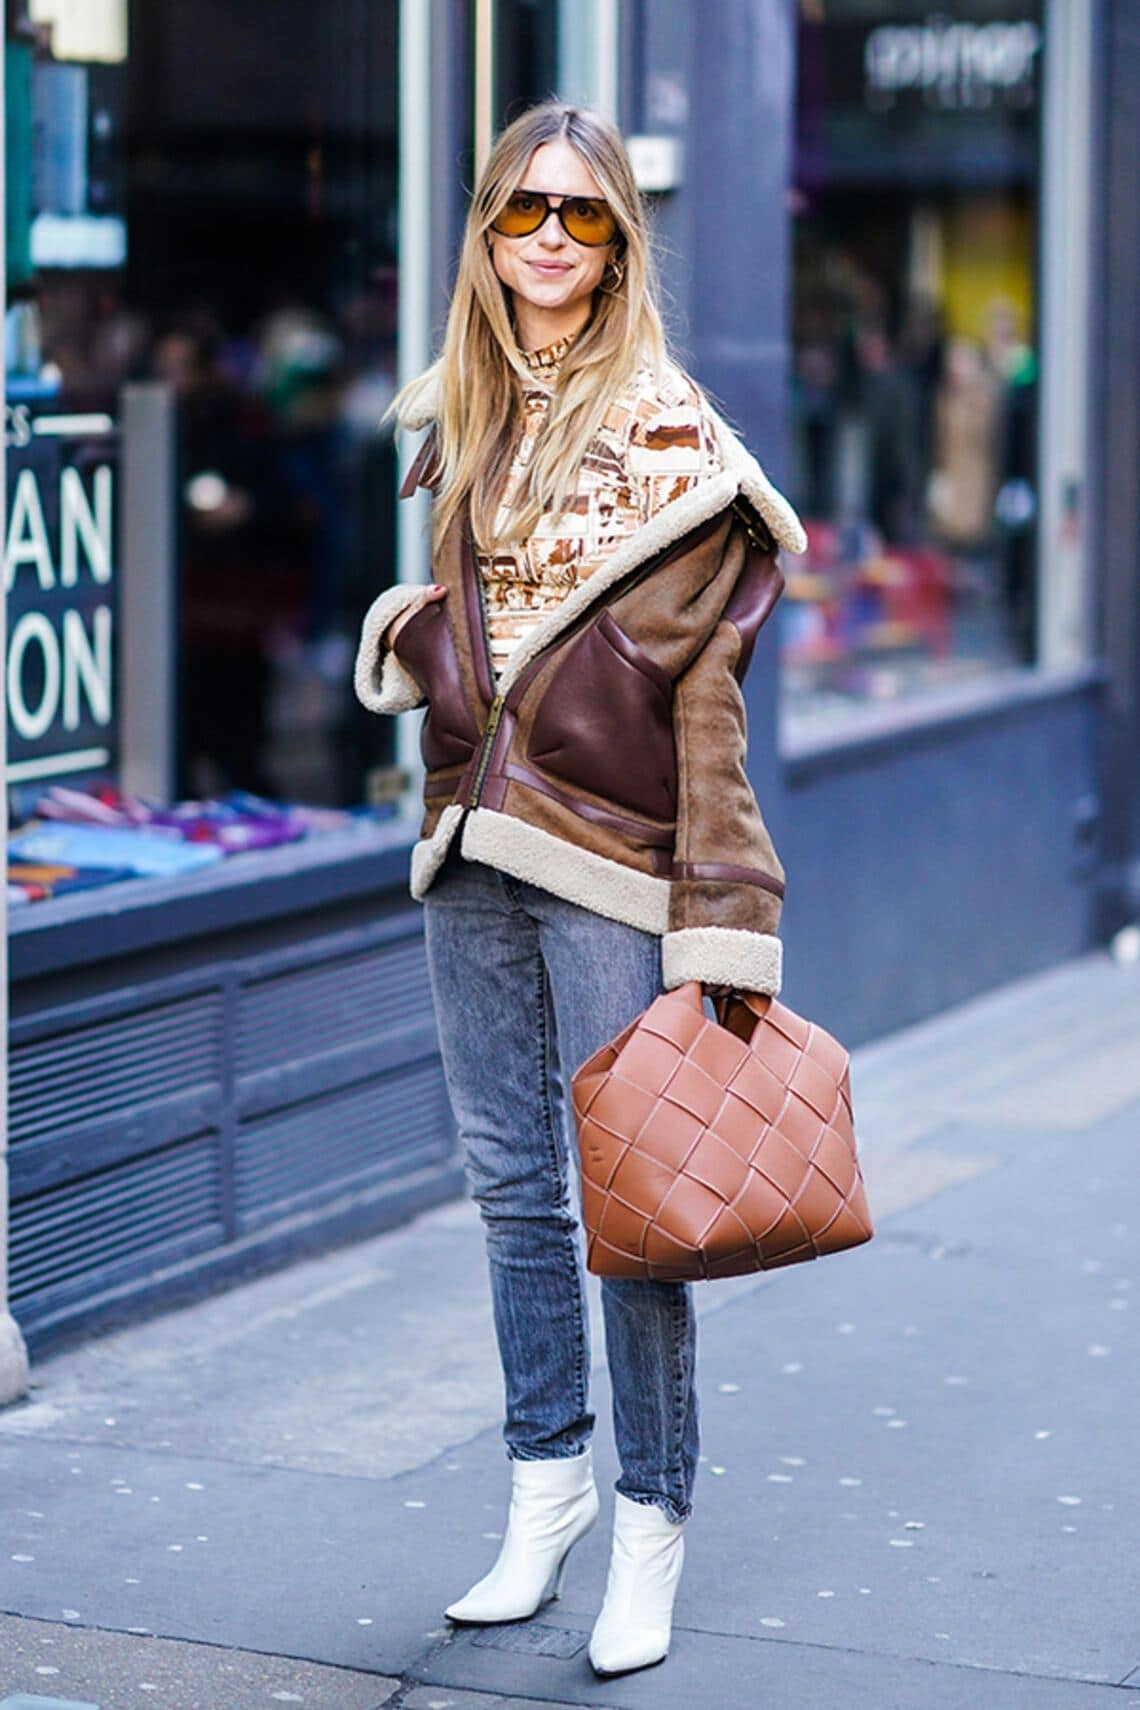 Style of the Day Pernille Teisbaek